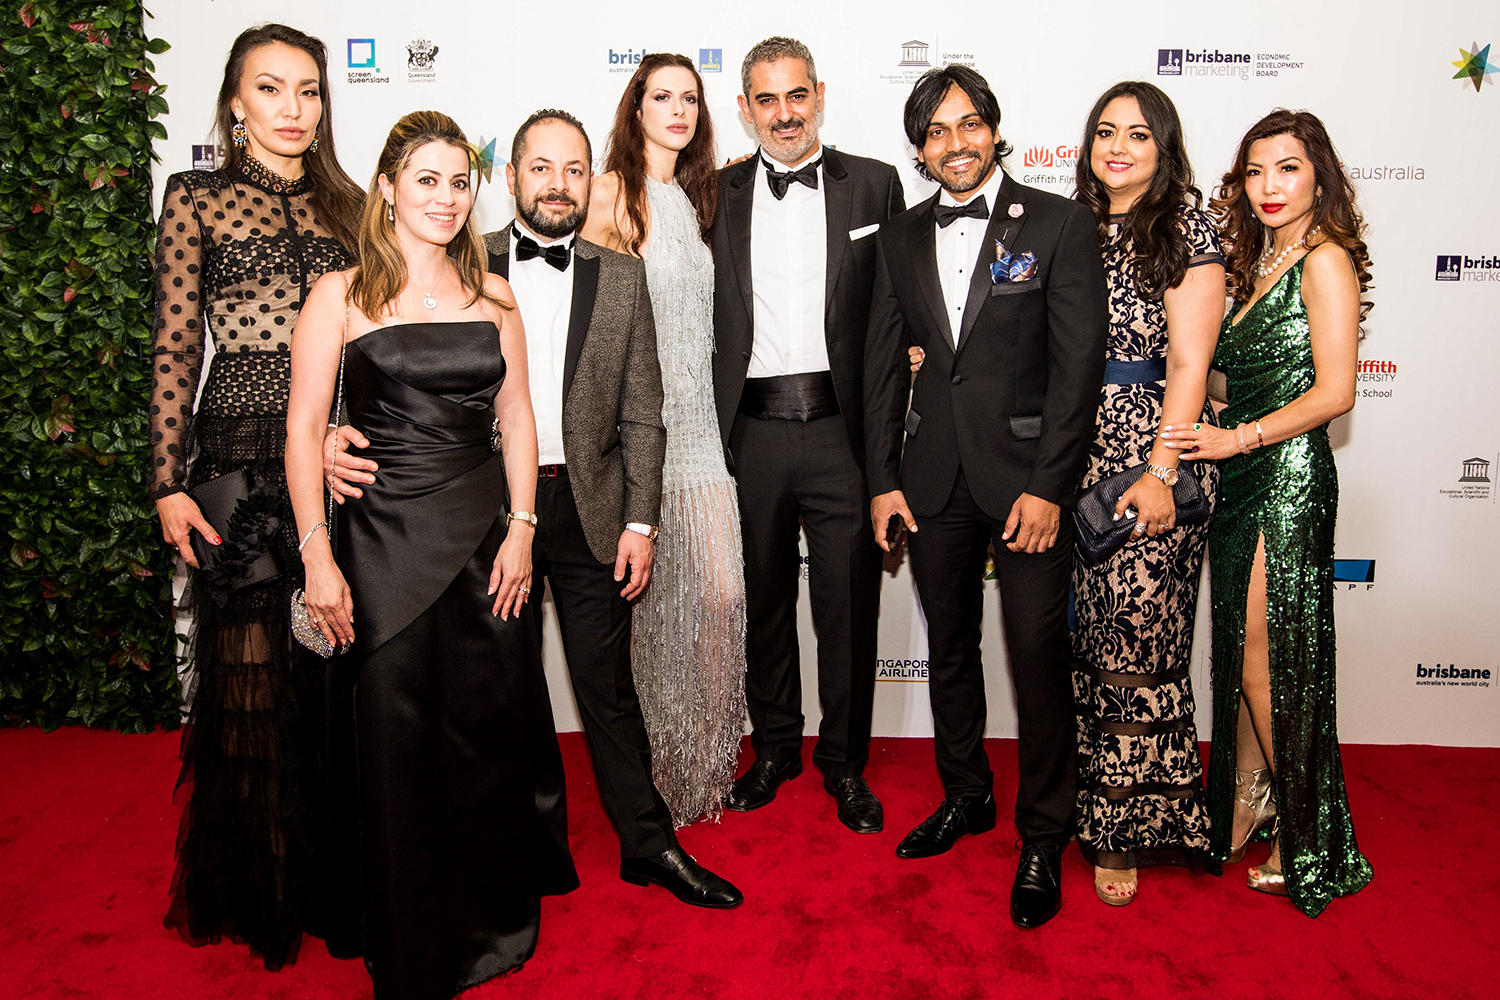 Guest on the Red Carpet of the APSA held in Brisbane on the 29th November 2018